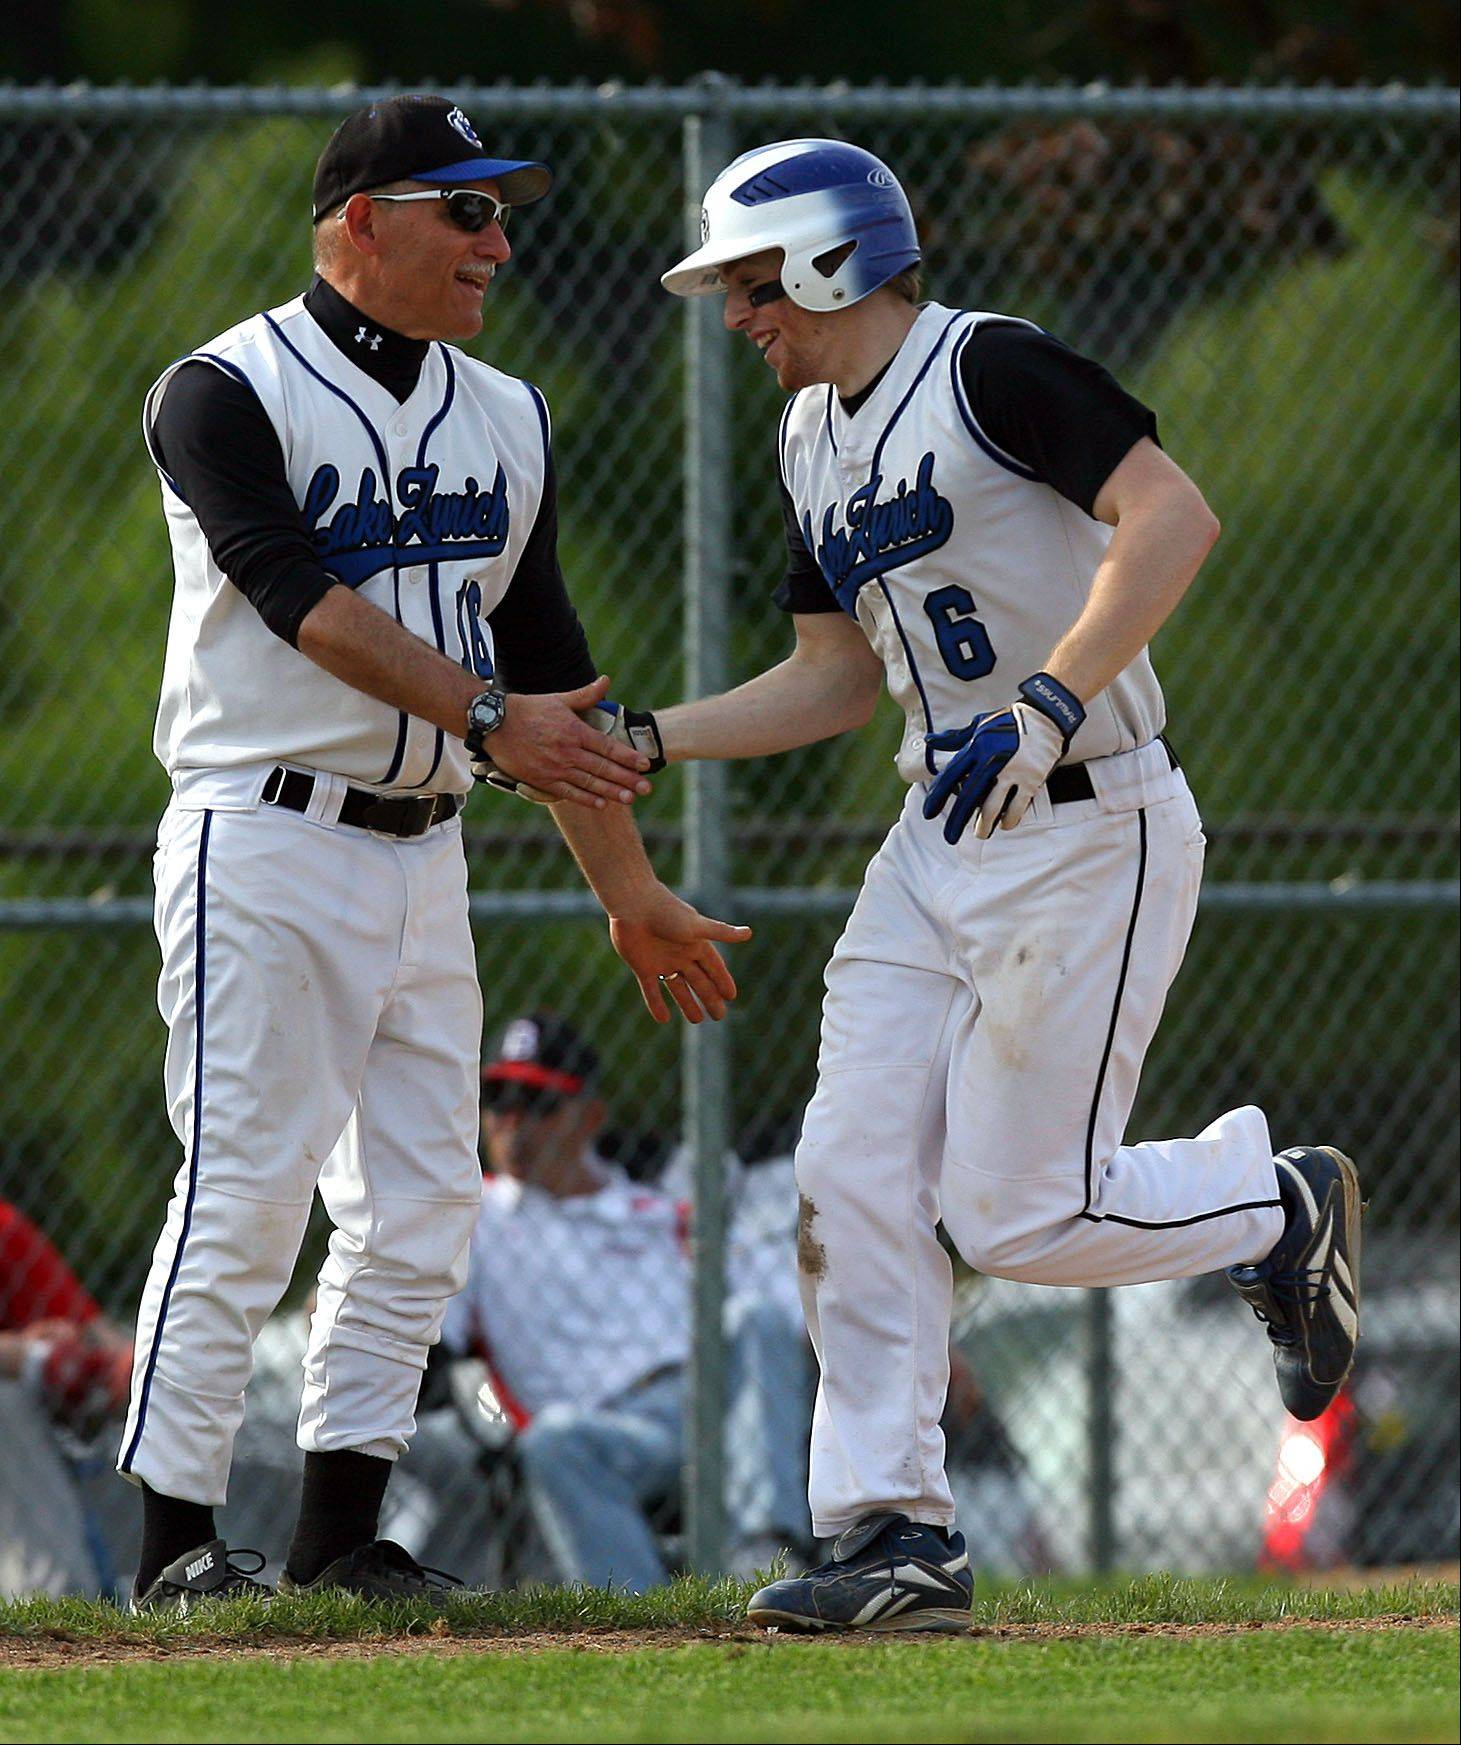 Lake Zurich head baseball coach Gary Simon, shown here congratulating Sean Eder after a home run in 2011, will not return for a 14th season with the Bears.